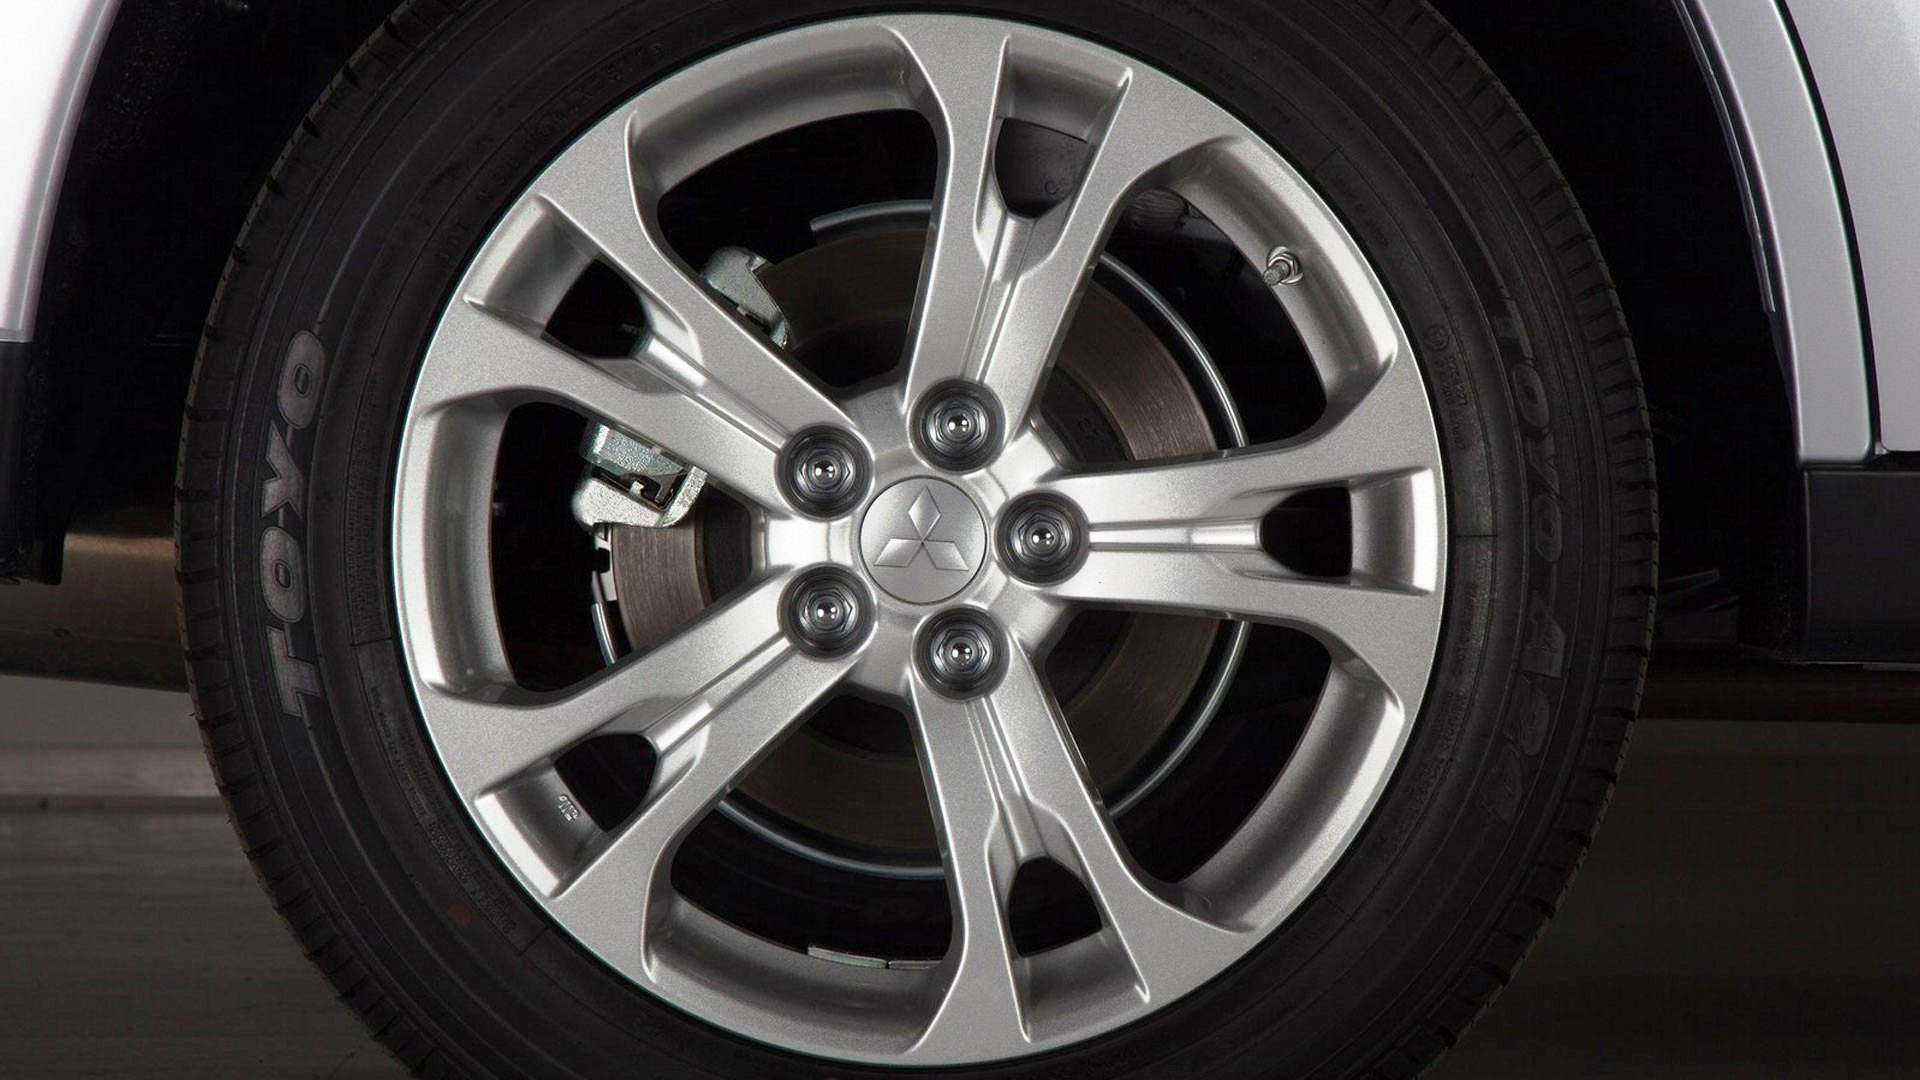 Mitsubishi Outlander wheels #3